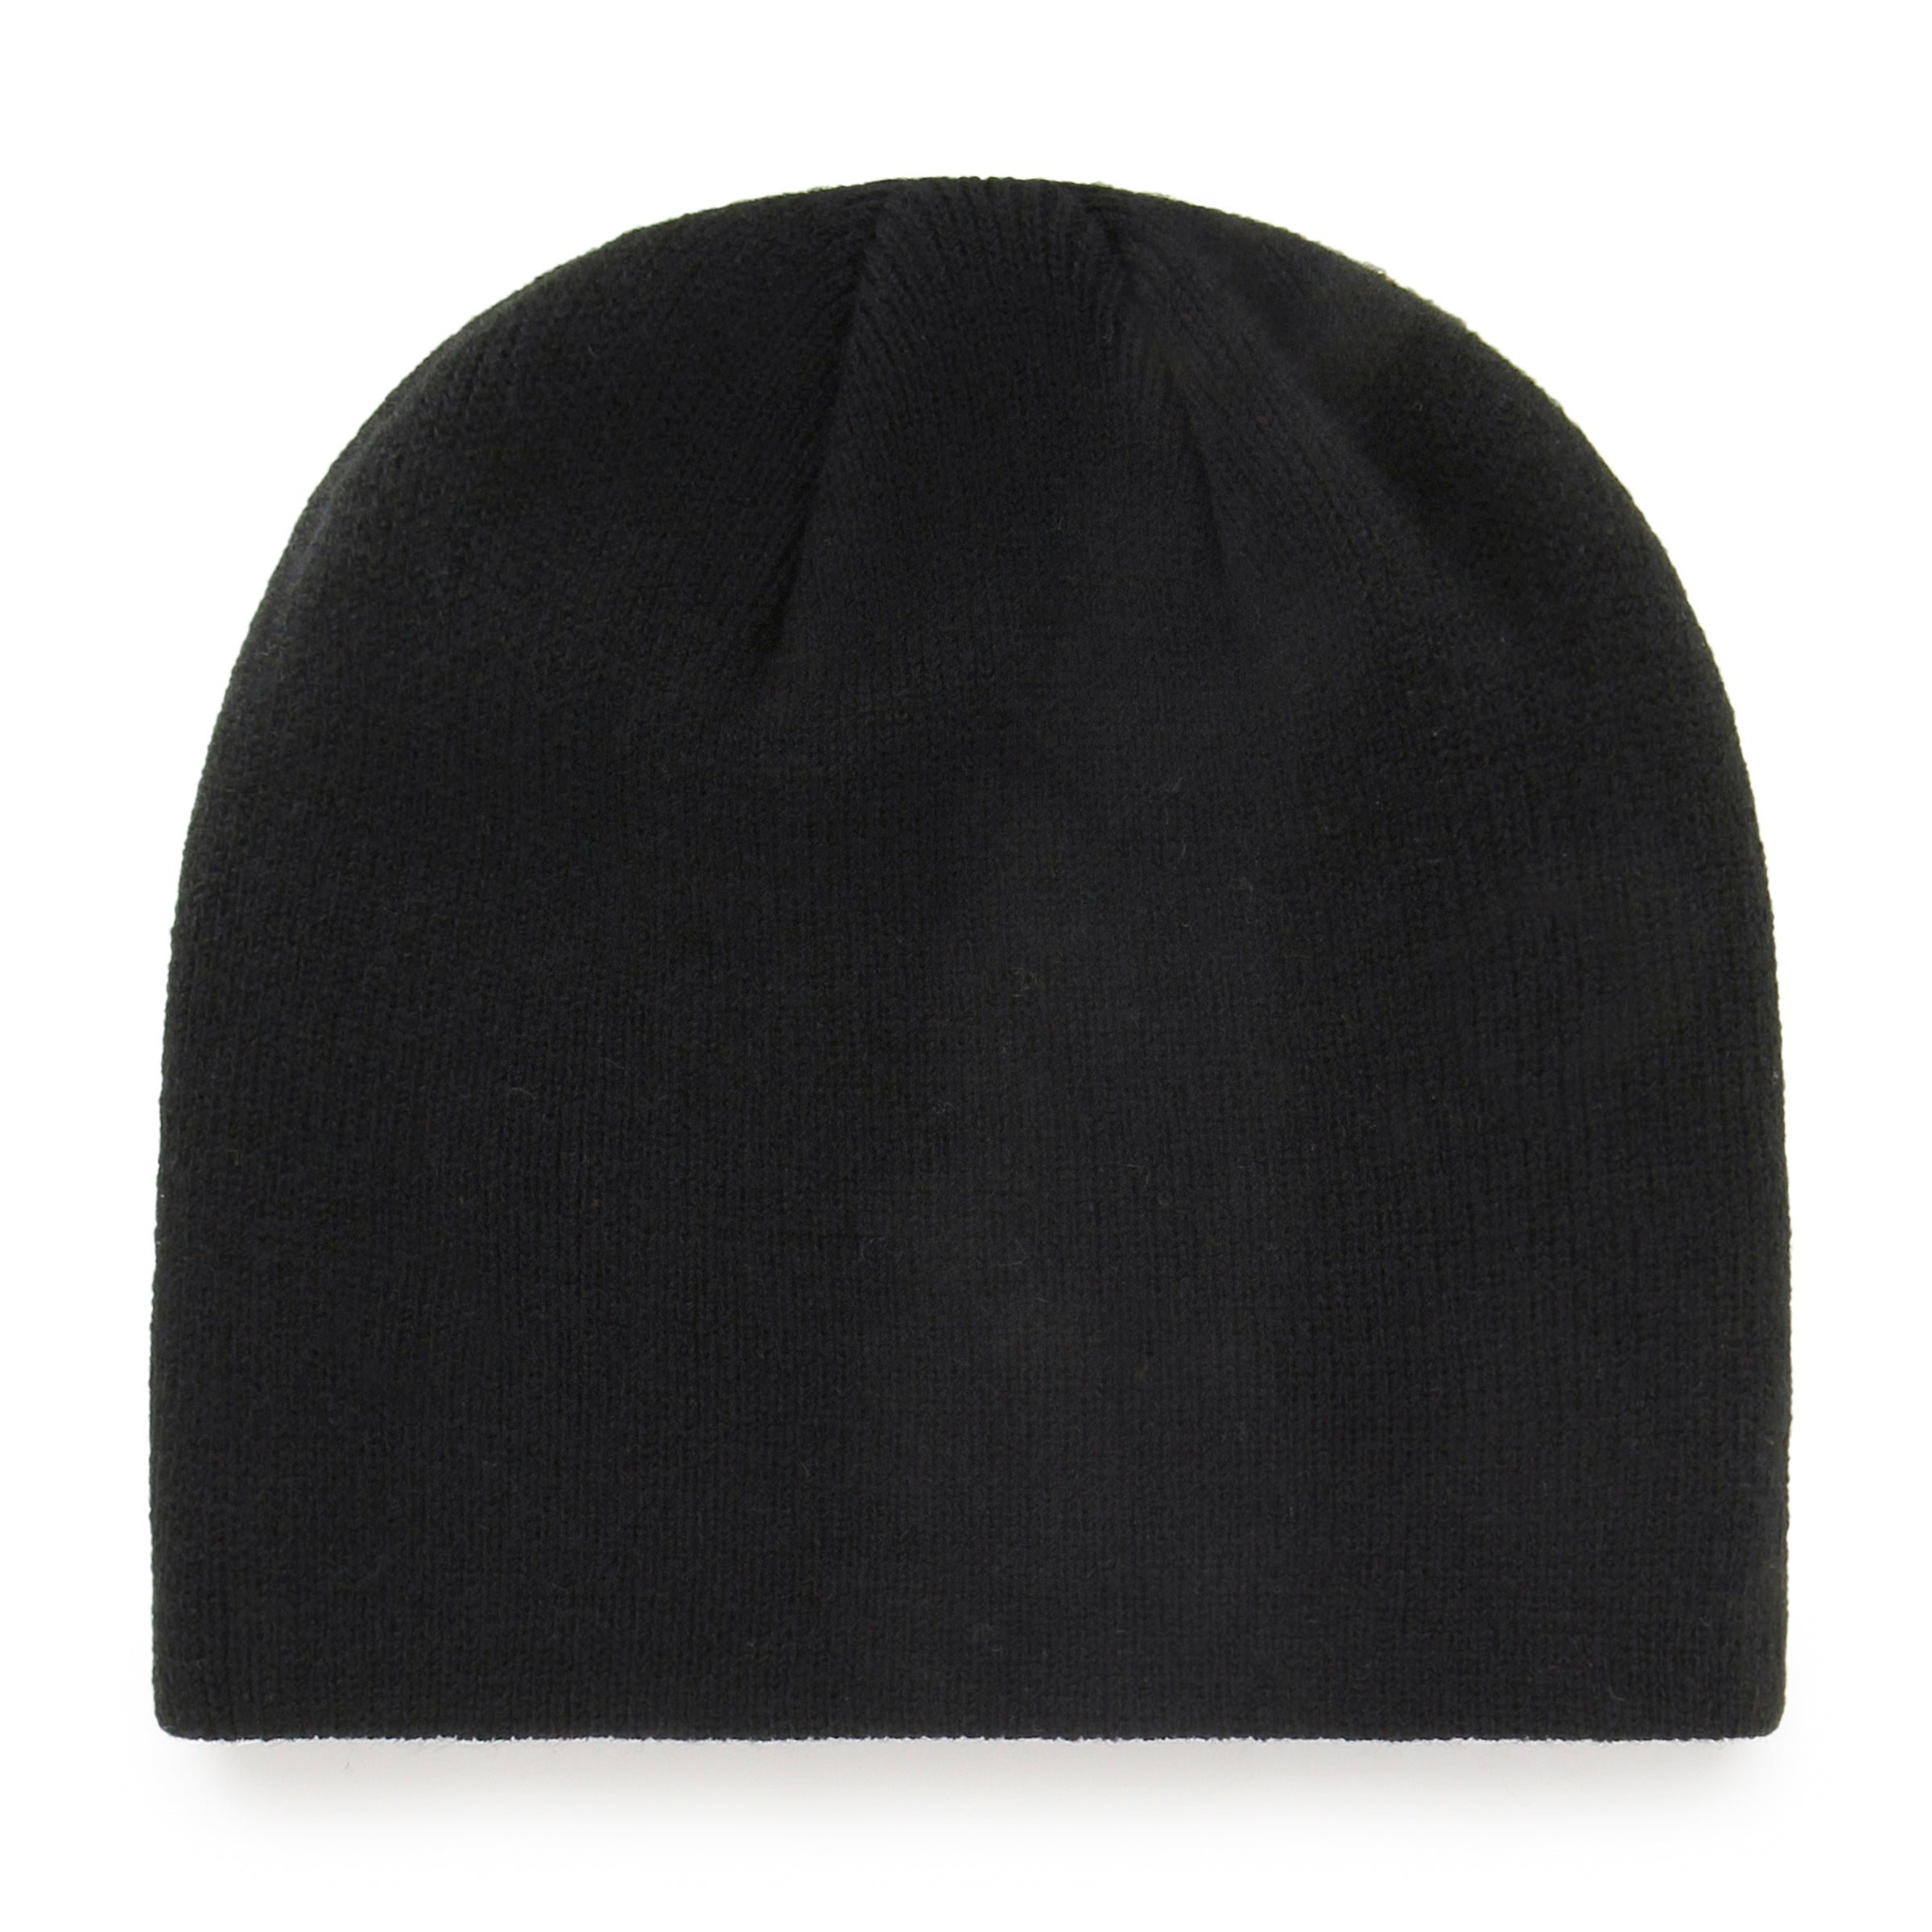 NFFC Black '47 Beanie - Nottingham Forest